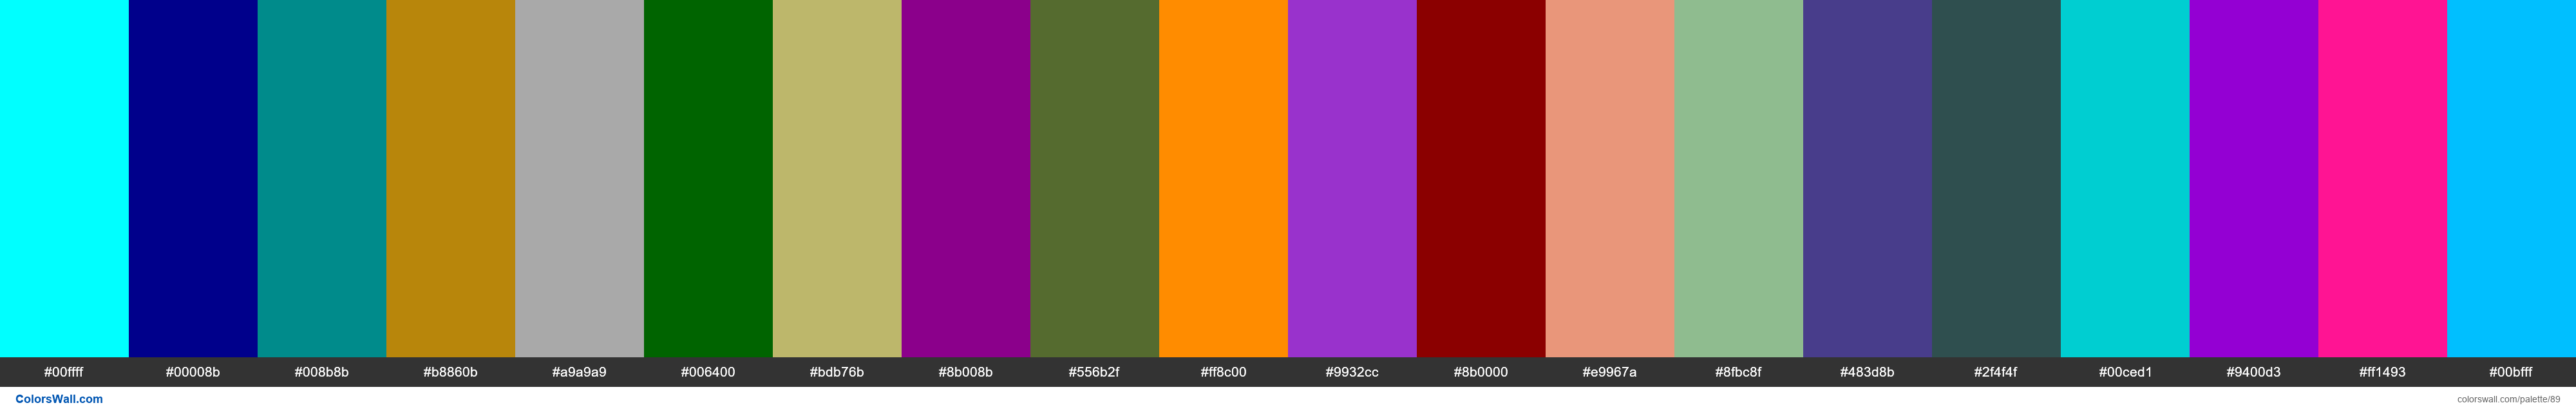 Color Names Supported by All Browsers Page#2 - #89